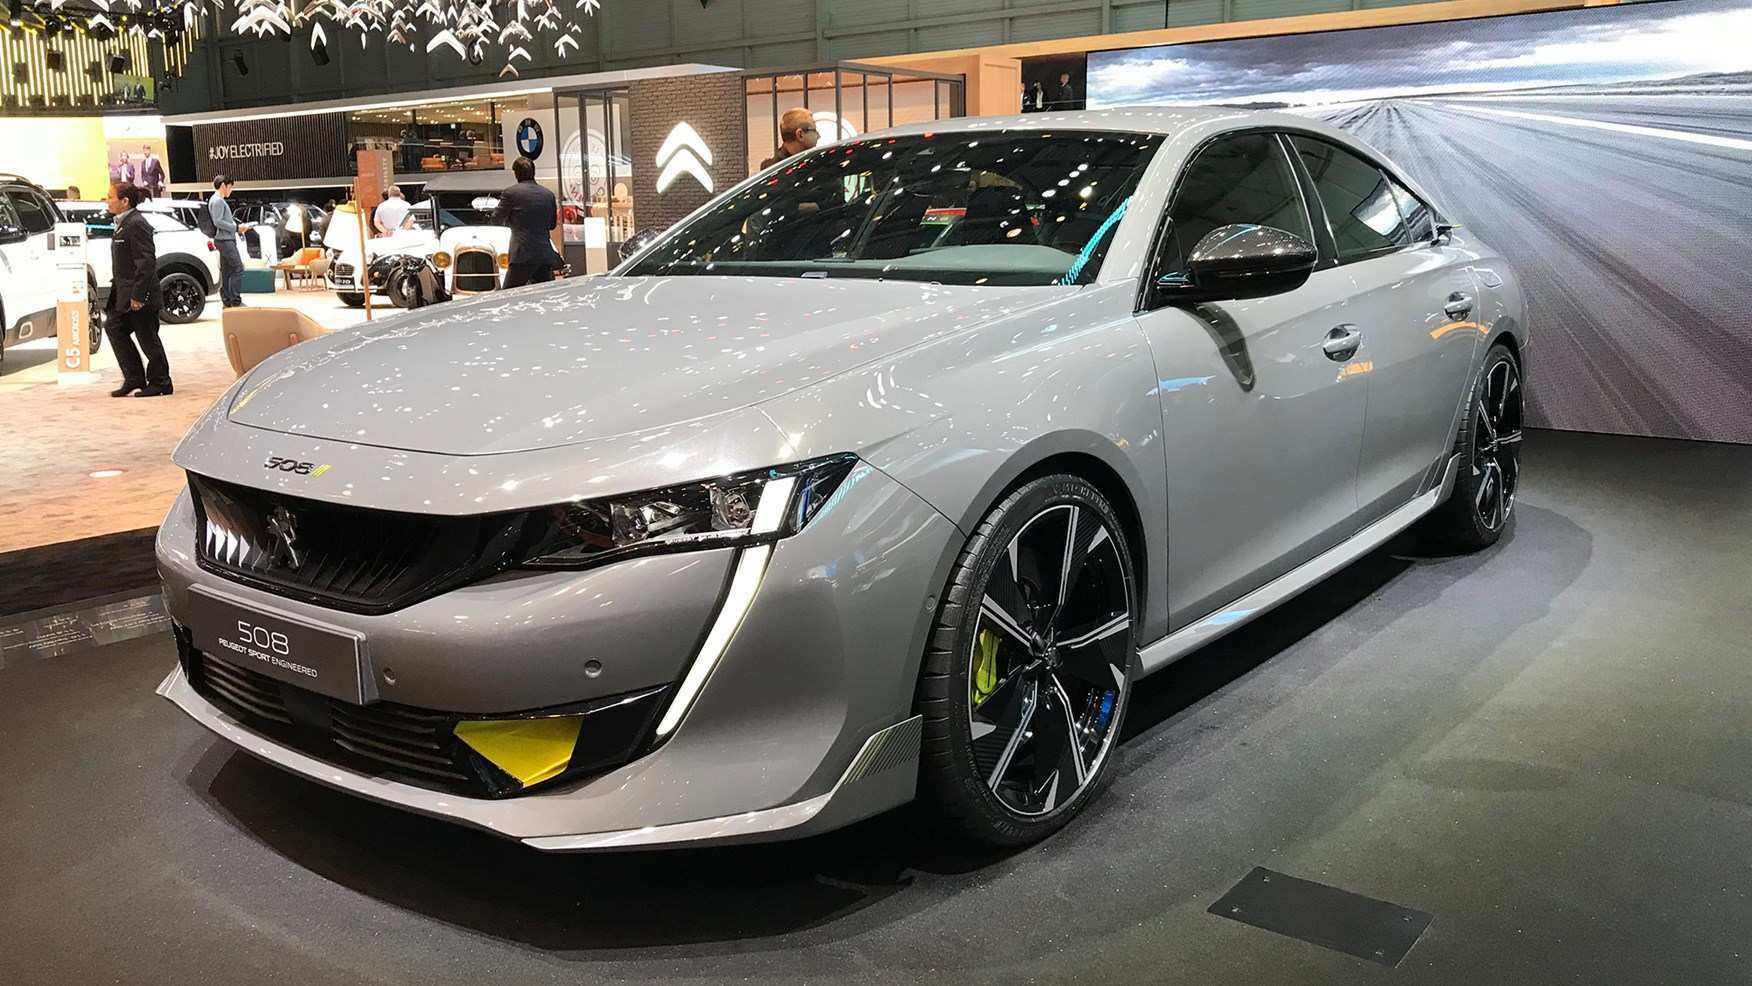 69 The Motori 2020 Peugeot Price Design And Review